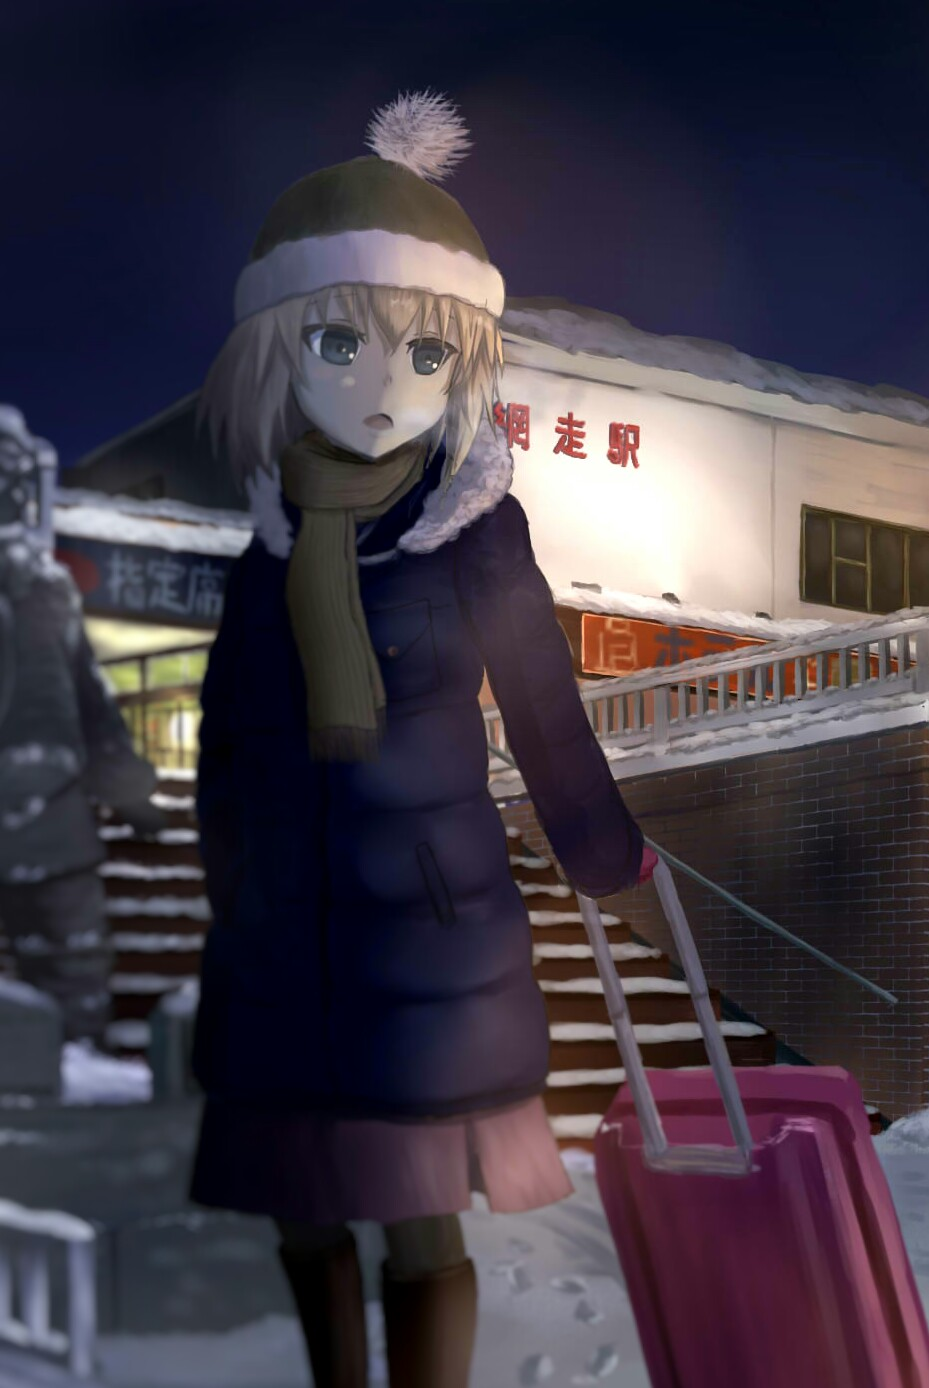 1girl black_background black_footwear blonde_hair blue_coat blue_eyes blurry blurry_foreground bobblehat breath briefcase brown_scarf building casual depth_of_field footprints fringe fusou_(fuso0205) girls_und_panzer hat highres holding katyusha location_request long_sleeves medium_skirt night night_sky pantyhose pink_skirt red_hat skirt sky snow solo stairs statue translation_request winter winter_clothes